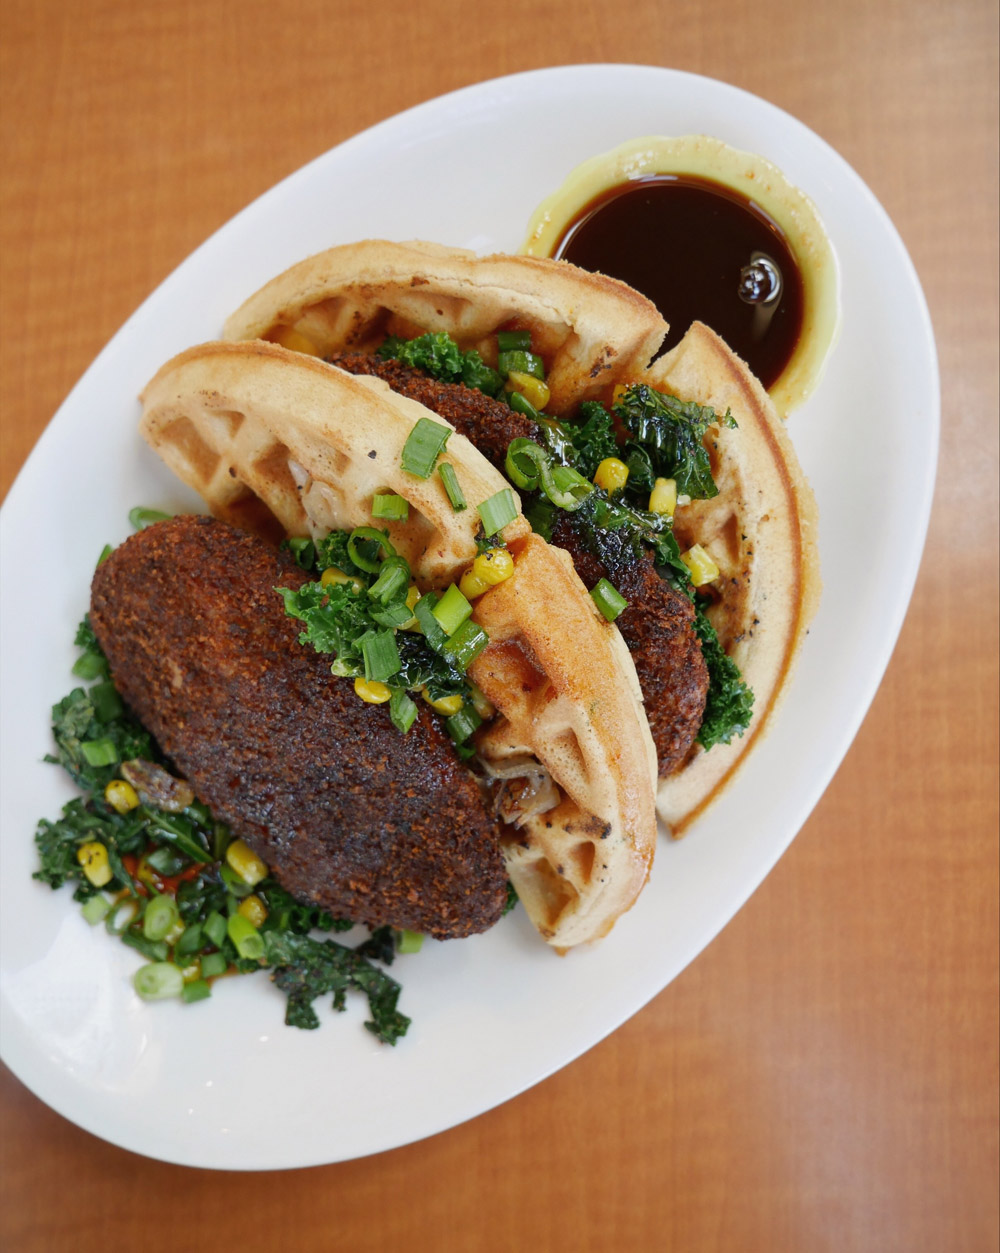 Vegan Chicken and Waffles, Native Foods Cafe, Bridgeport Village